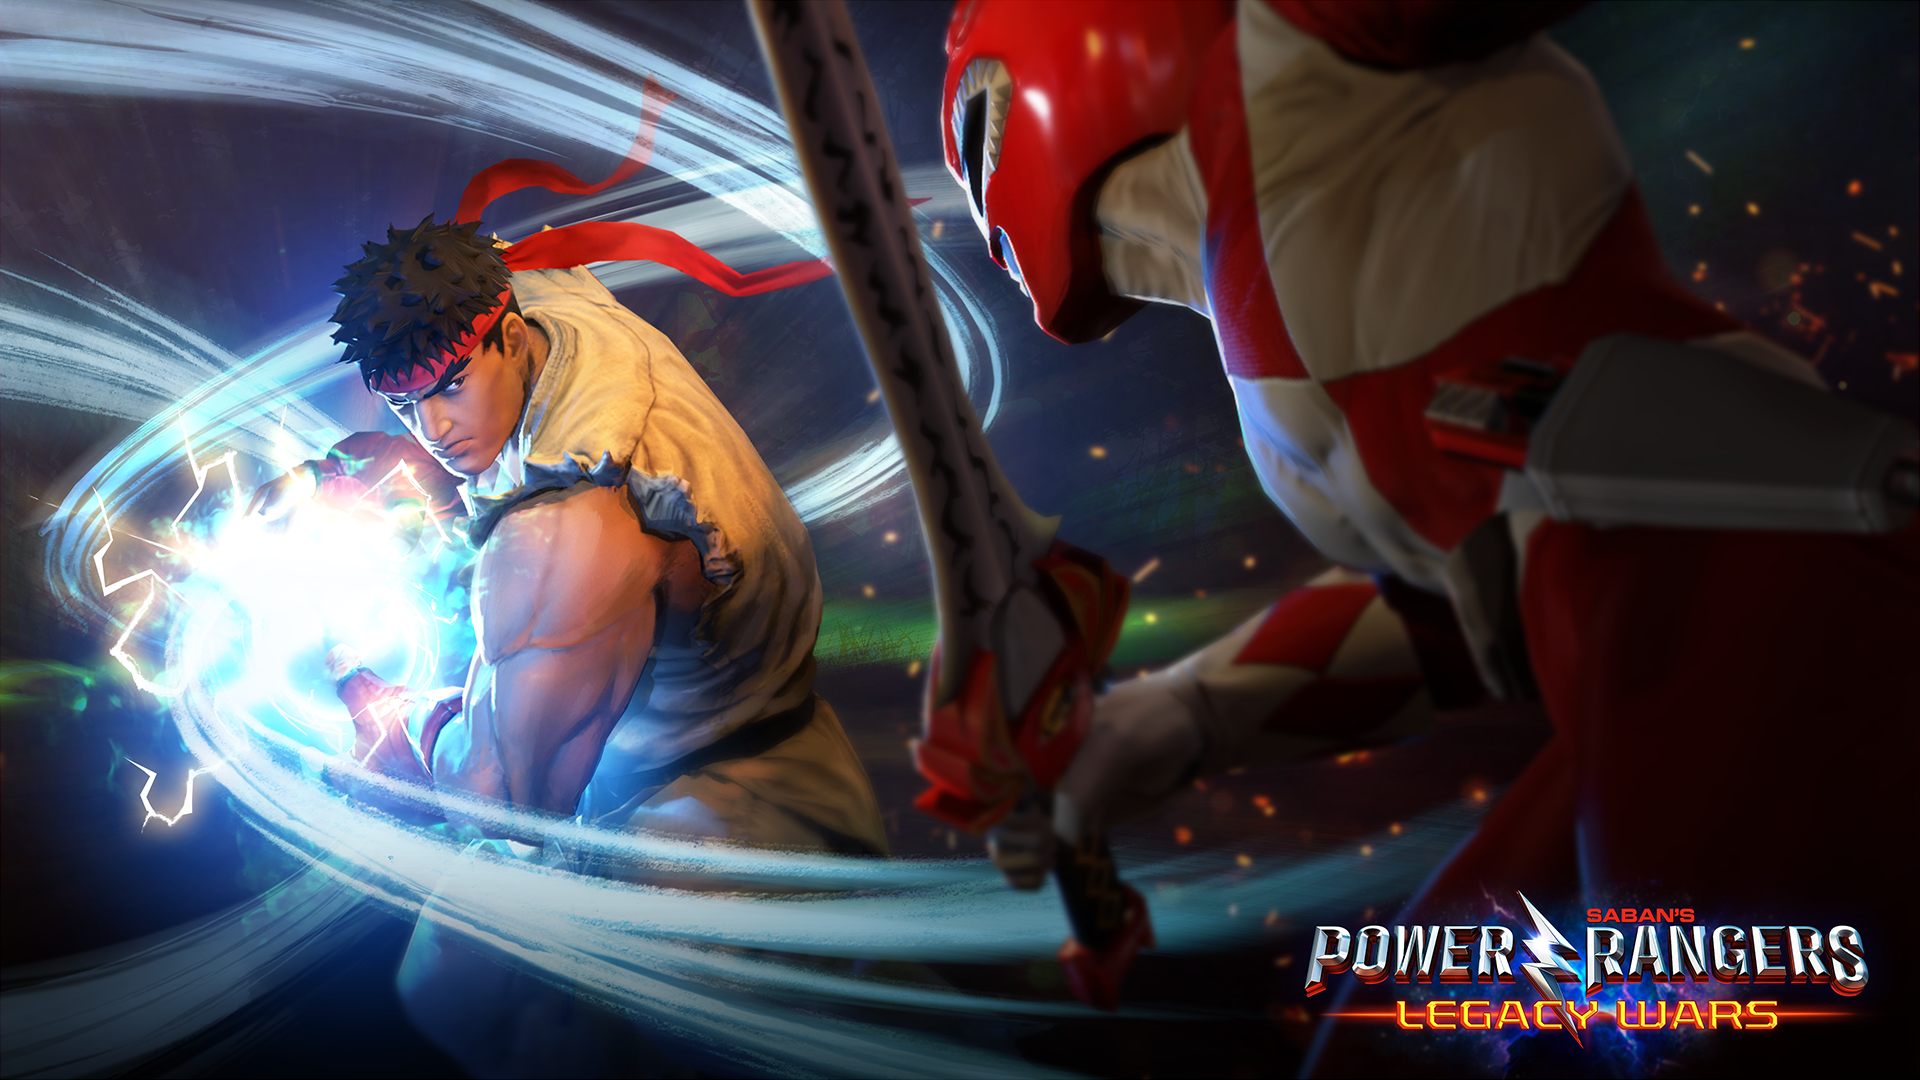 Power Rangers: Legacy Wars Mobile Game Adds Street Fighter